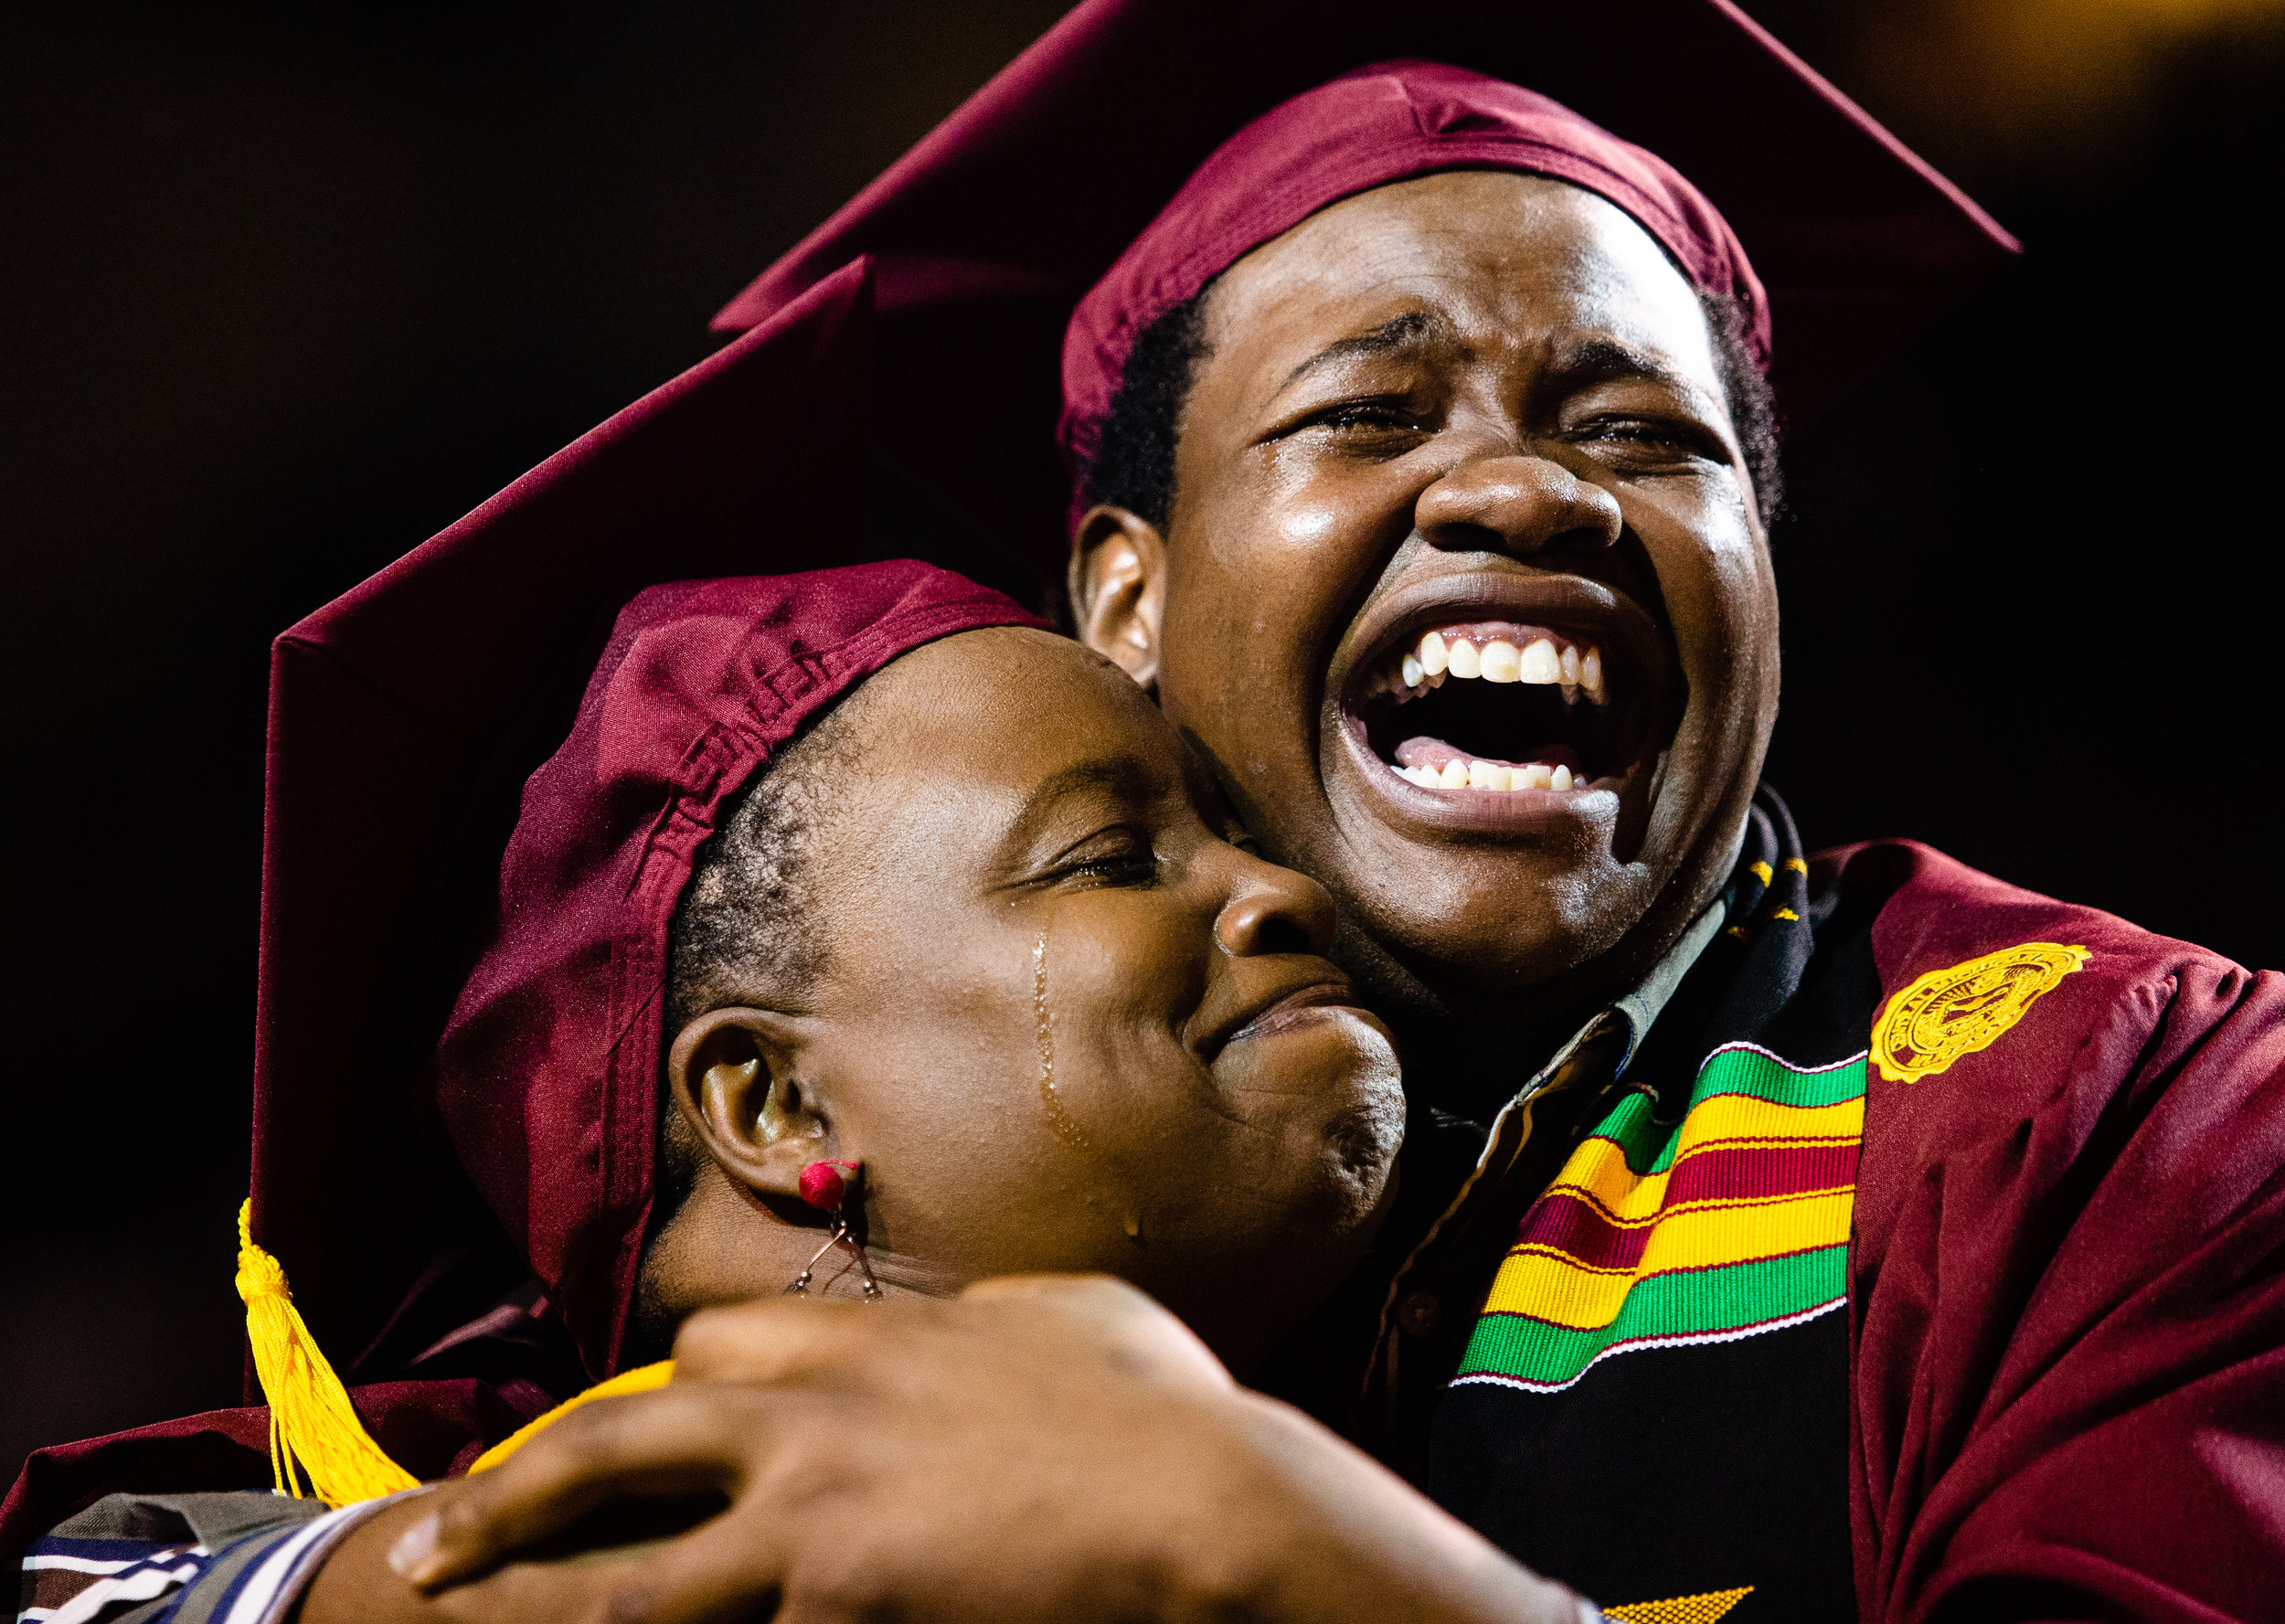 Stephan JoQuan Wilson embraces his mother Sharonda Wilson during his graduation ceremony, May 4, 2019 at Central Michigan University. Sharonda was supposed to be graduating from Ferris State University the same time as Stephan and wasn't going to attend his graduation, but the CMU President brought her out, surprising Stephan, and conferred her degree.